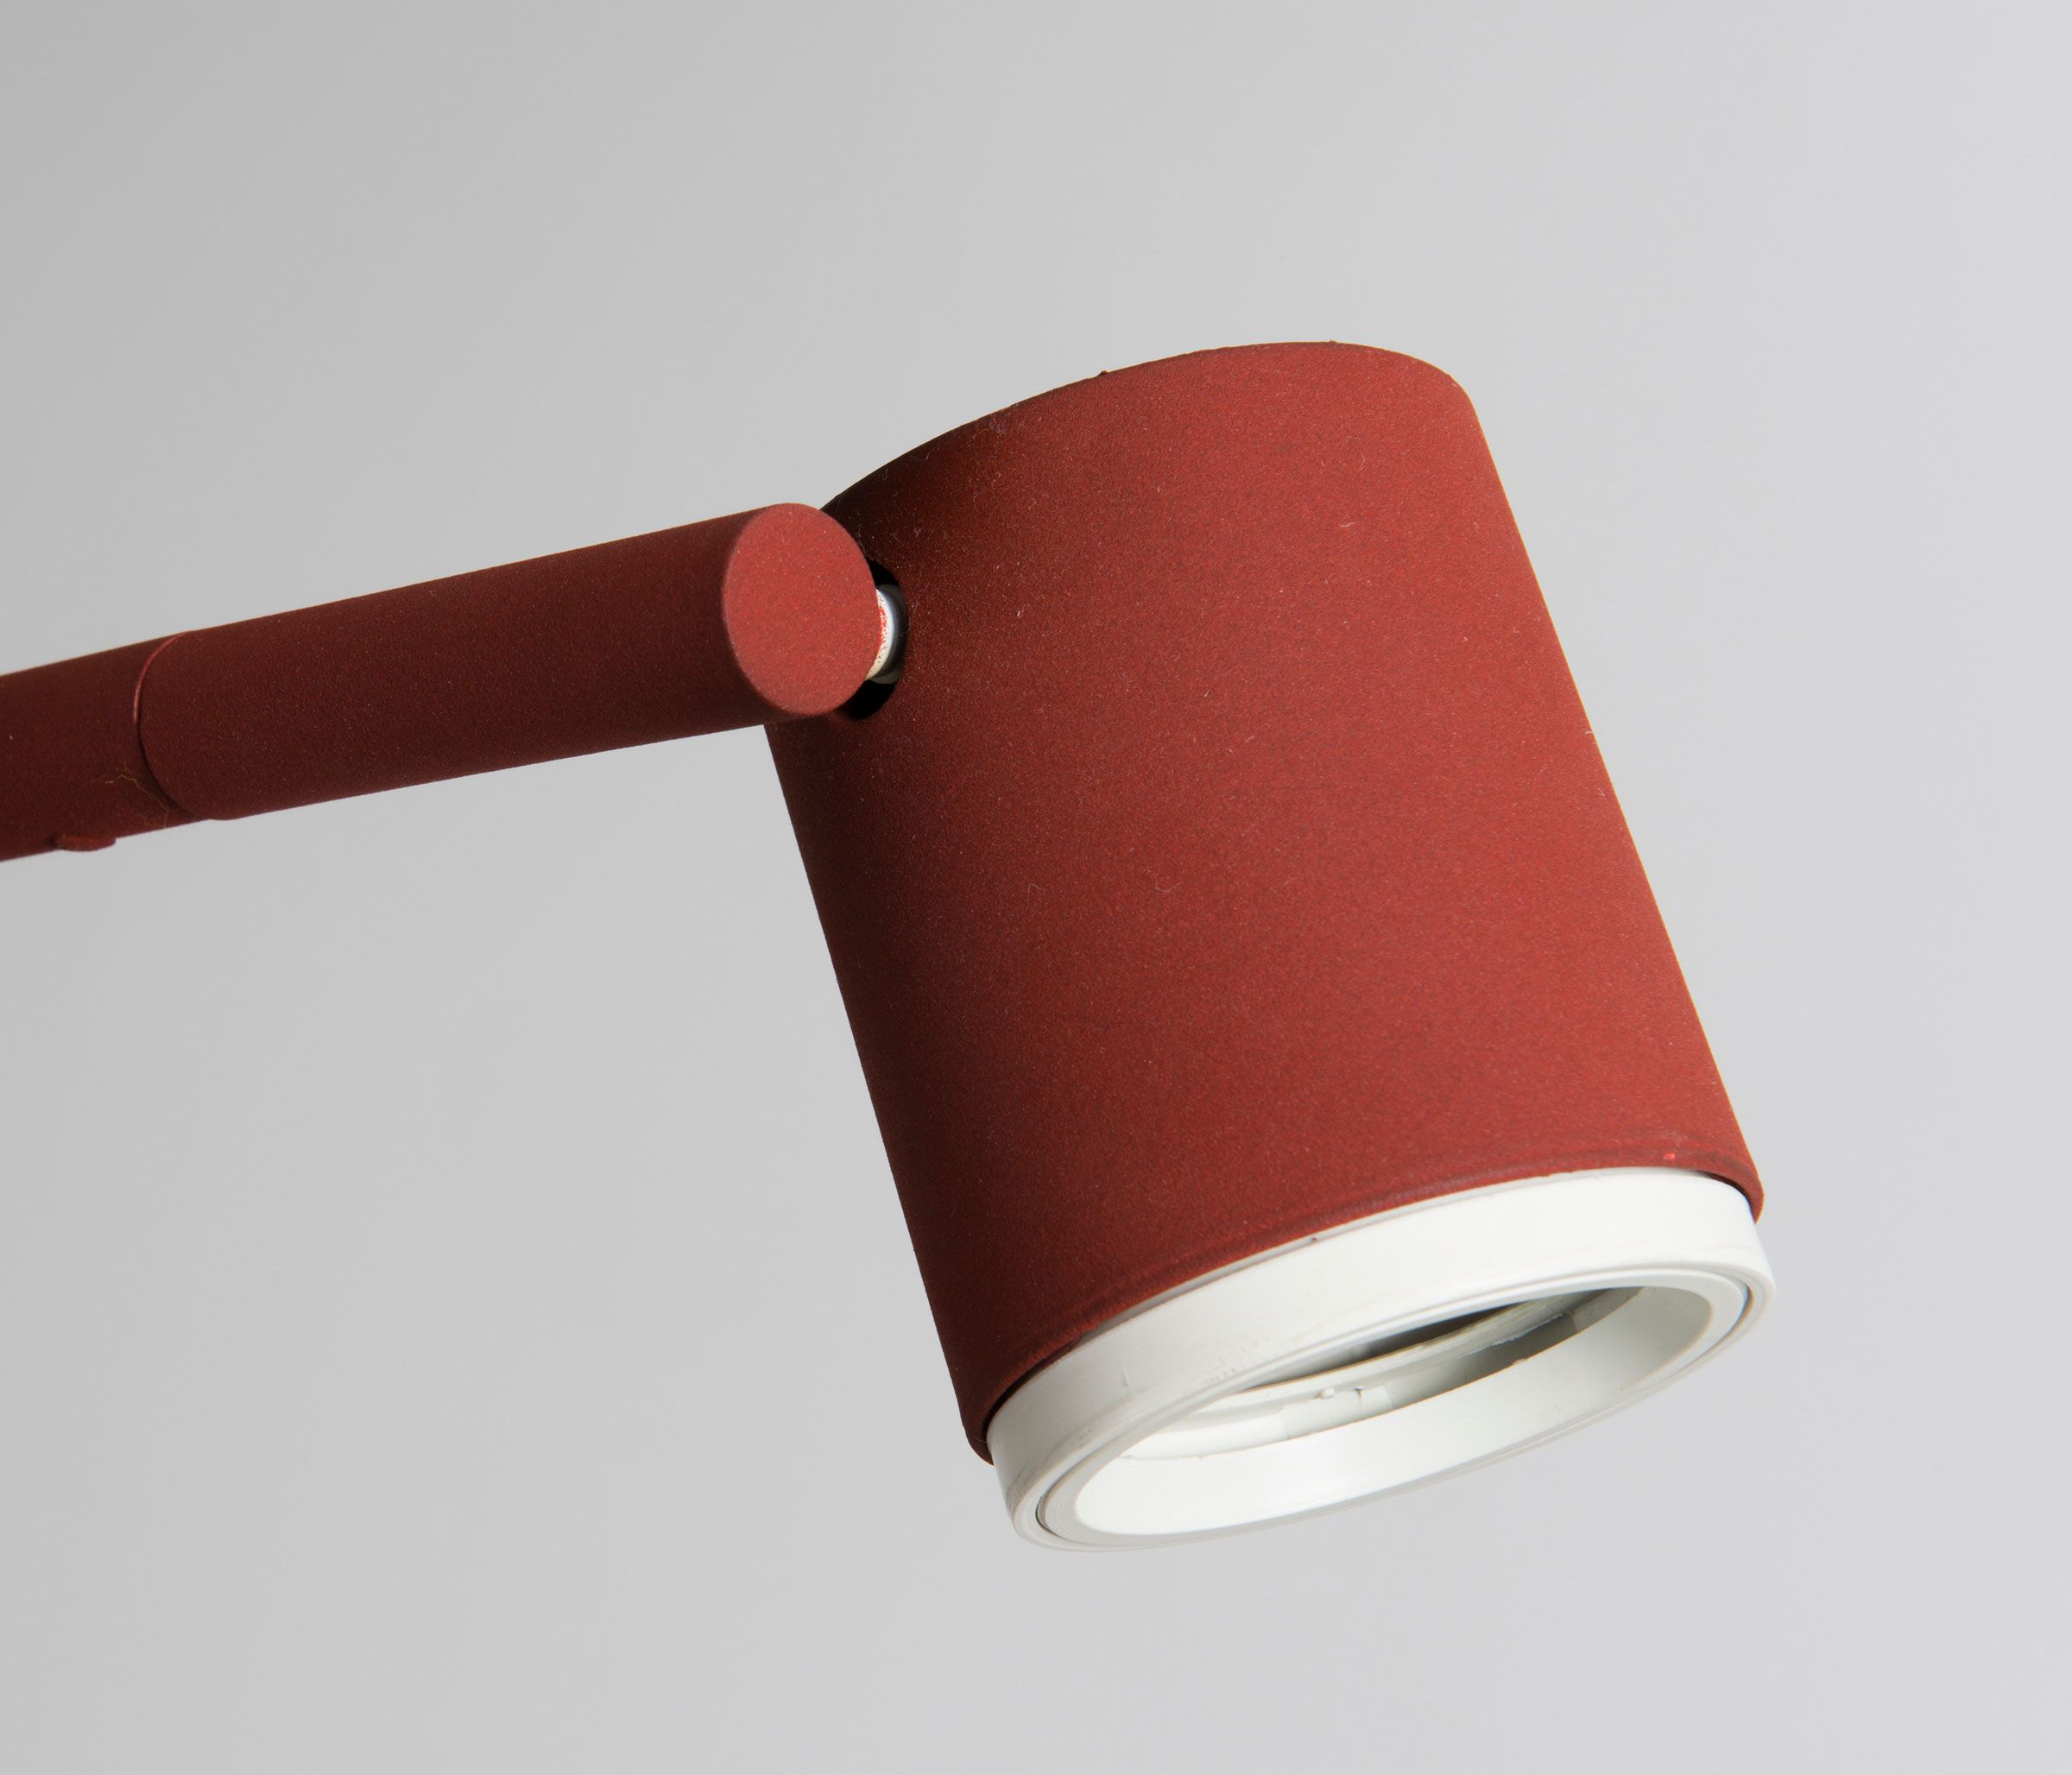 Philips Light Tower In Eindhoven: 'Halo Click' Floor Light Sottsass, Ettore